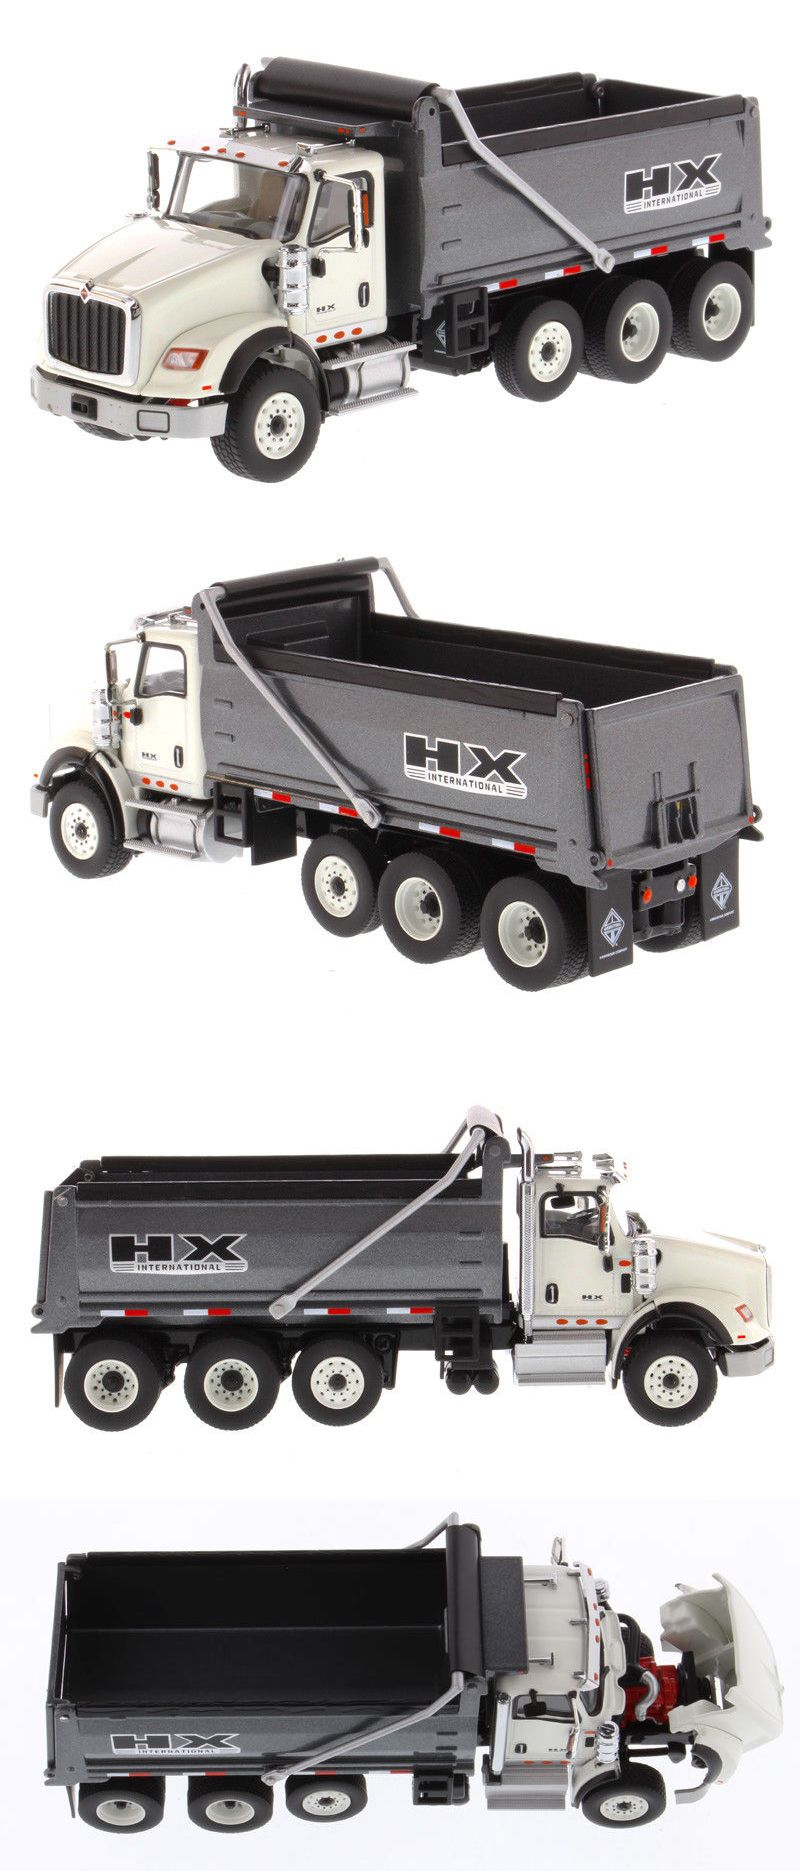 Diecast And Toy Vehicles 222 International Hx620 Dump Truck White With Grey Bed 1 50 Diecast Masters 71013 Buy It Now Only 72 Dump Trucks Diecast Trucks